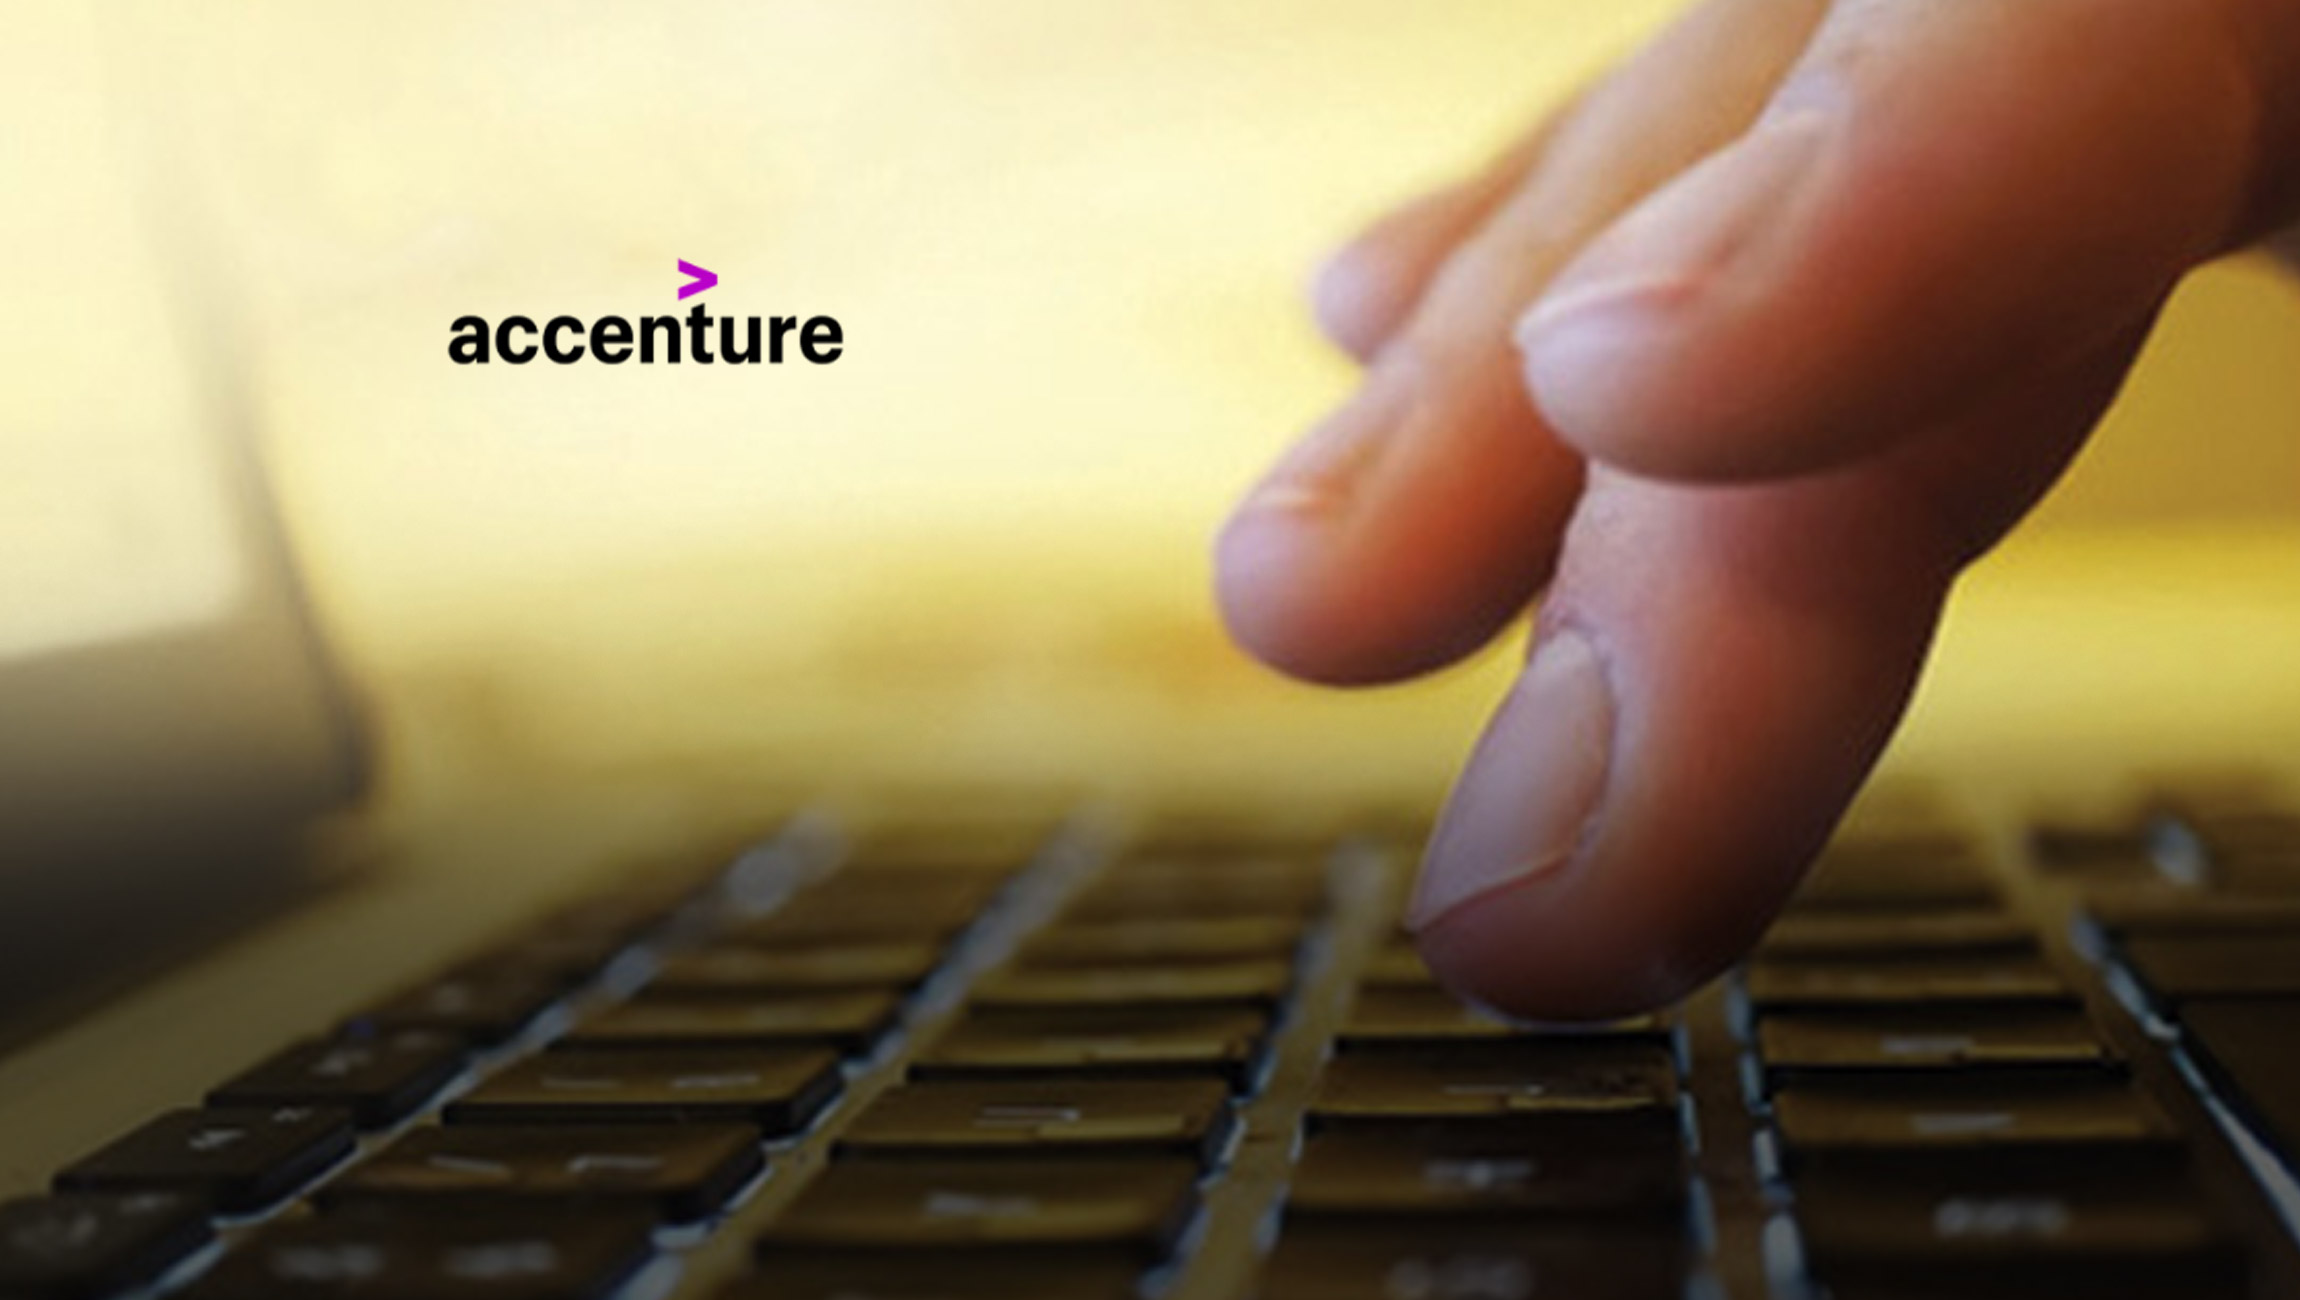 State-Sponsored Hackers and Ransomware Gangs Are Diversifying Tactics to Inflict More Harm, According to Accenture Report